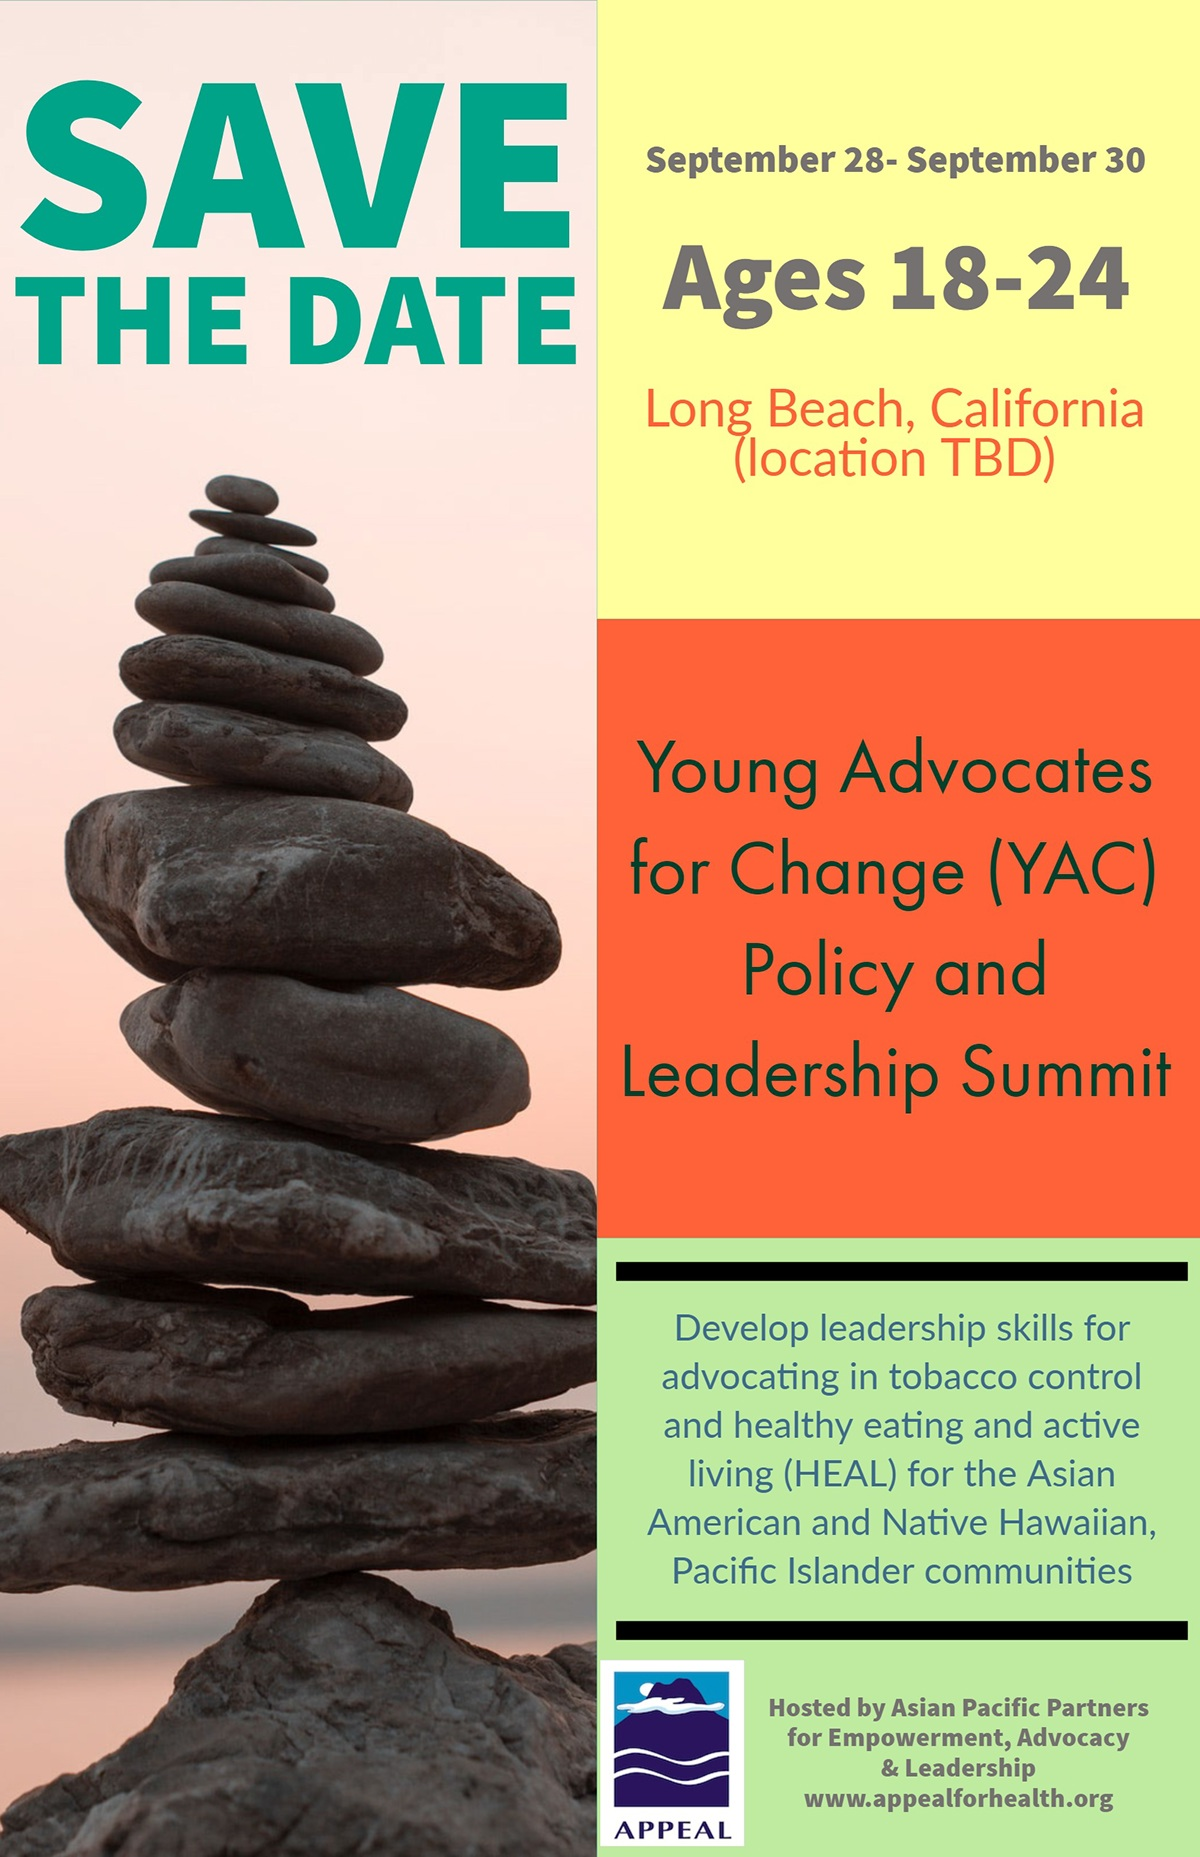 Save the Date Save the Date<P>Ages 18-24<P>Young Advocates for Change (YAC)<BR>Policy and Leadership Summit<P>Long Beach, California (location TBD)<P>September 28- September 30 <P>Develop leadership skills for advocating in tobacco control and healthy eating and active living (HEAL) for the Asian American and Native Hawaiian, Pacific Islander communities<P>Hosted by Asian Pacific Partners for Empowerment, Advocacy & Leadership<BR>www.appealforhealth.org